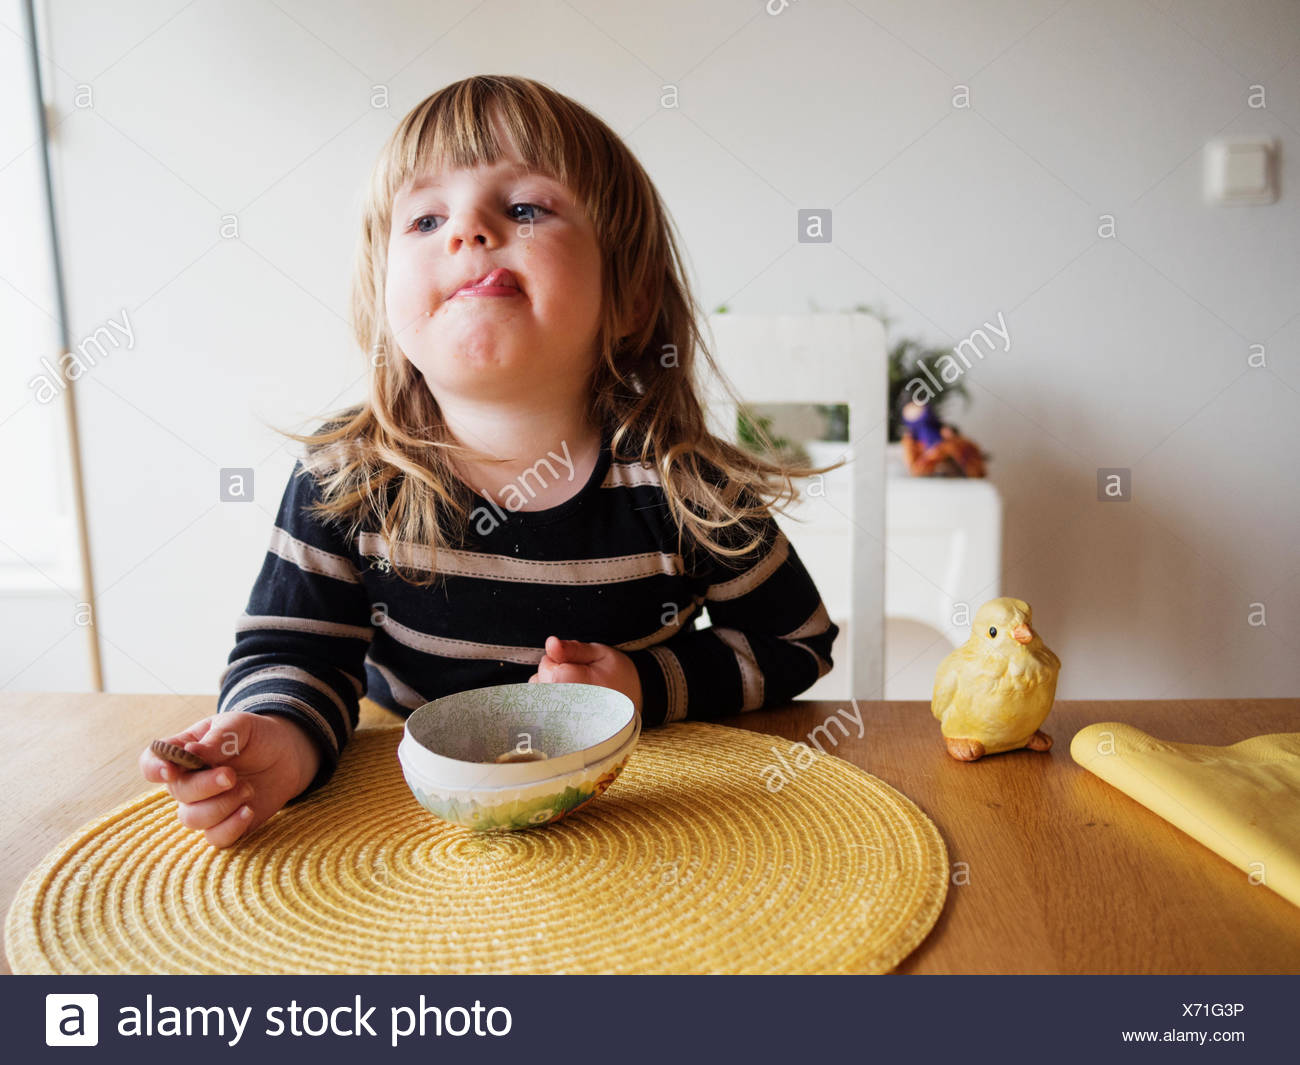 Little girl sticking out tongue at dining table - Stock Image